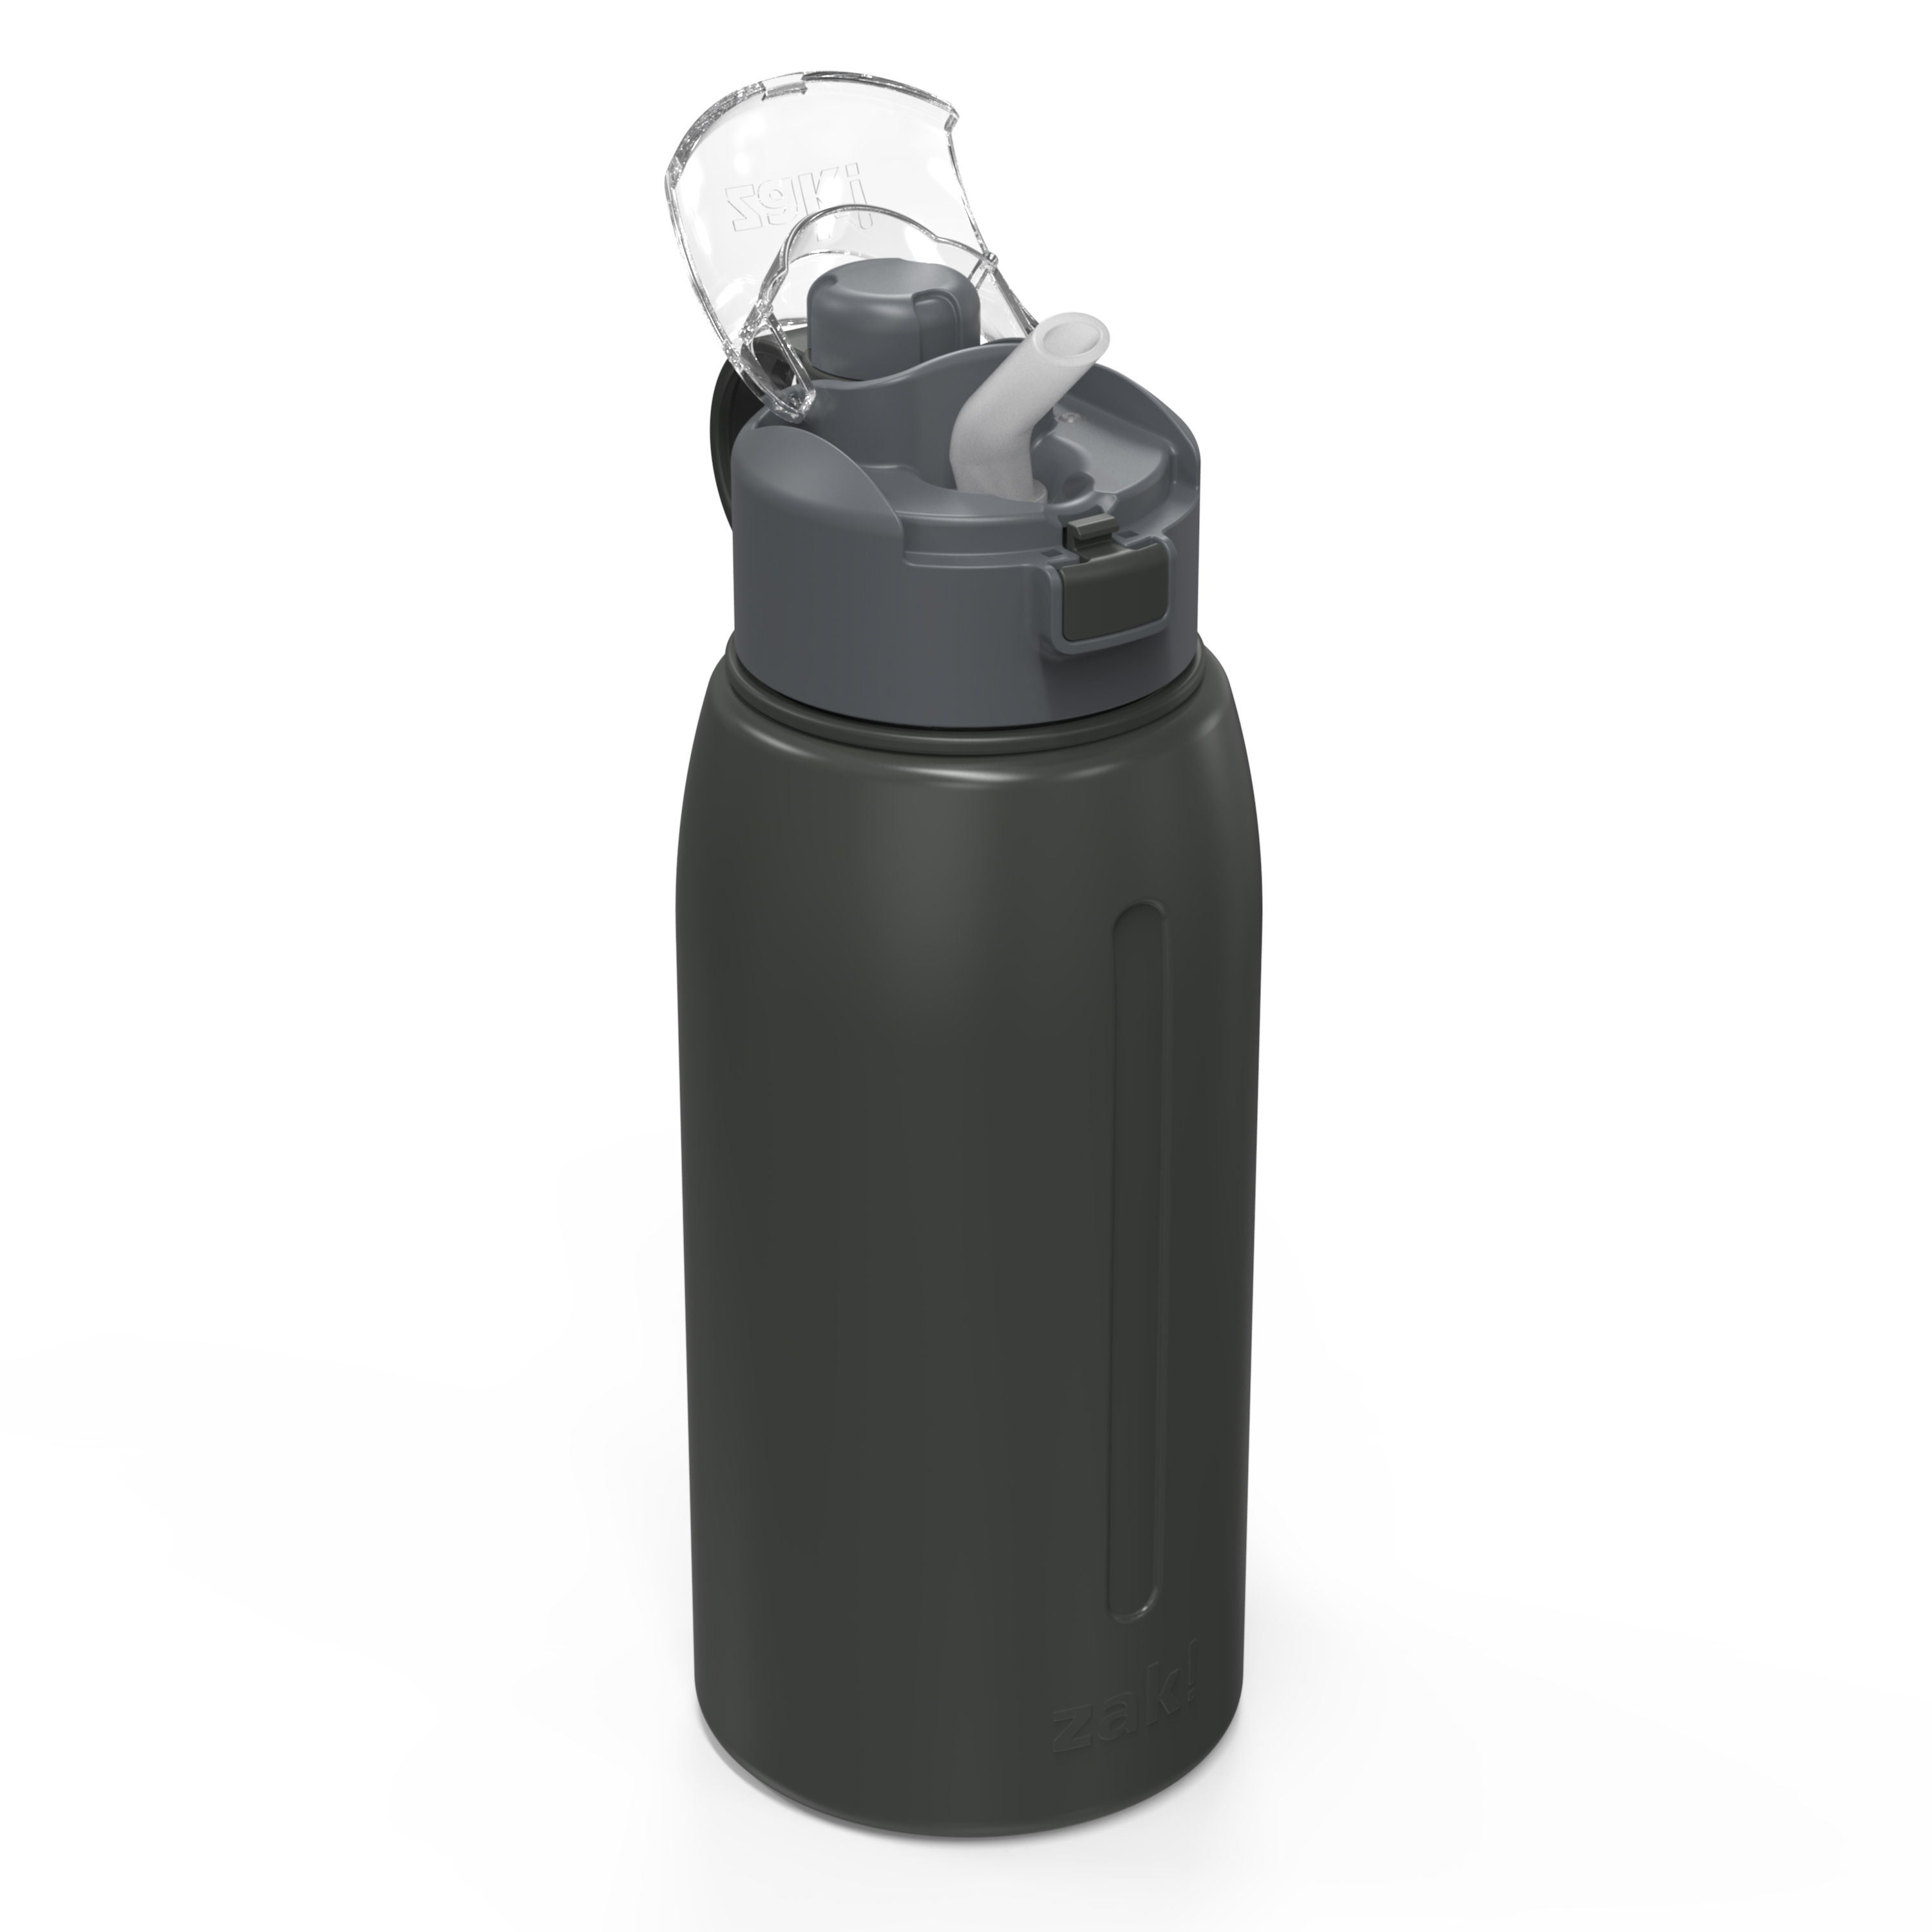 Genesis 32 ounce Vacuum Insulated Stainless Steel Tumbler, Charcoal slideshow image 3